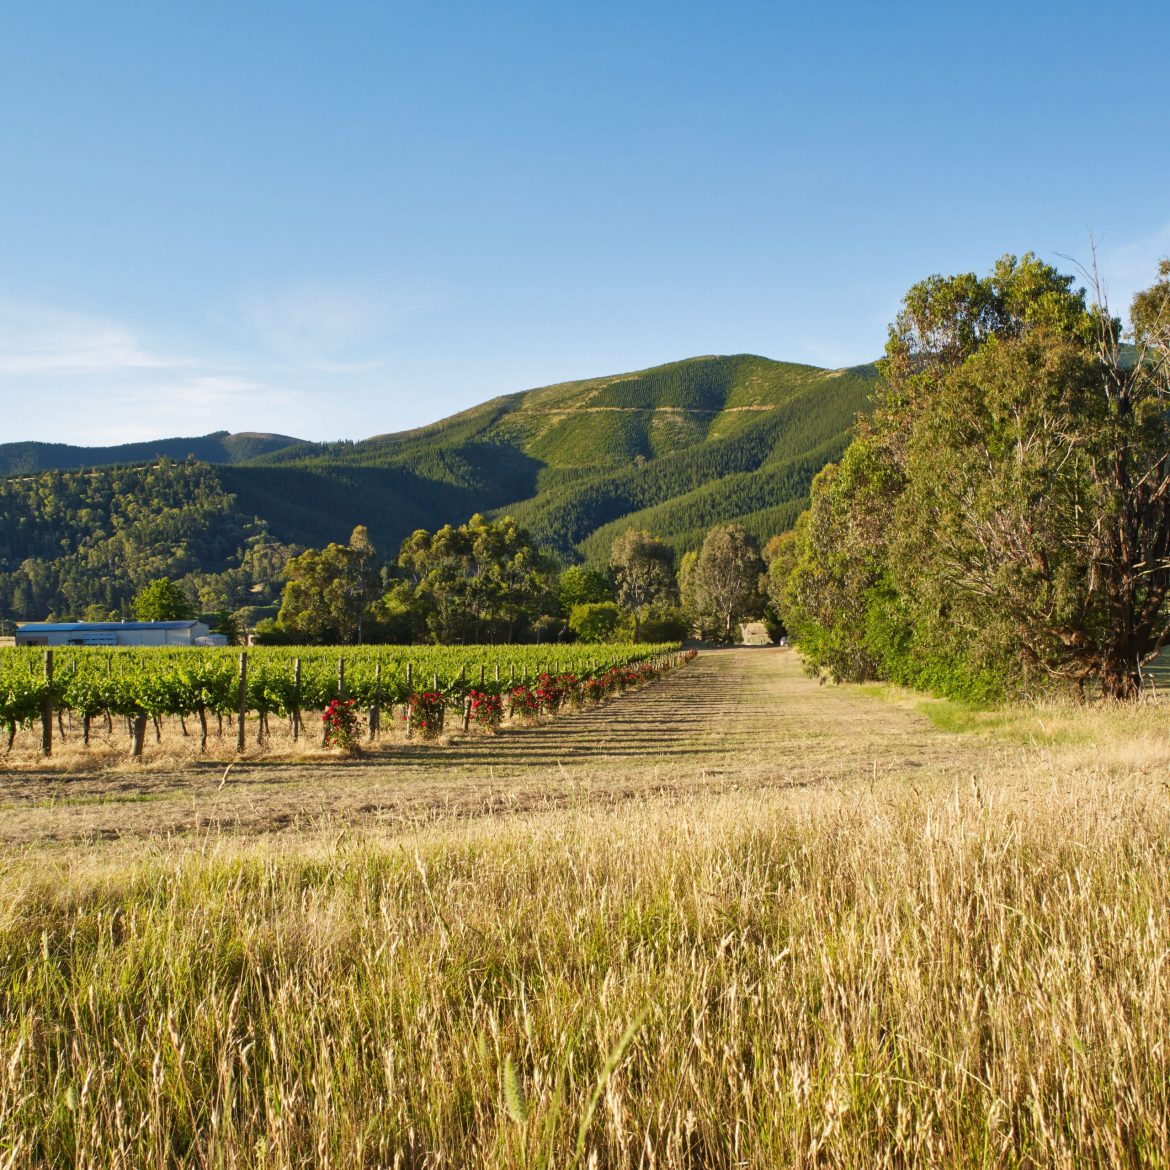 The Eagle Range Estate vineyard is located in the Happy Valley near Myrtleford, Victoria